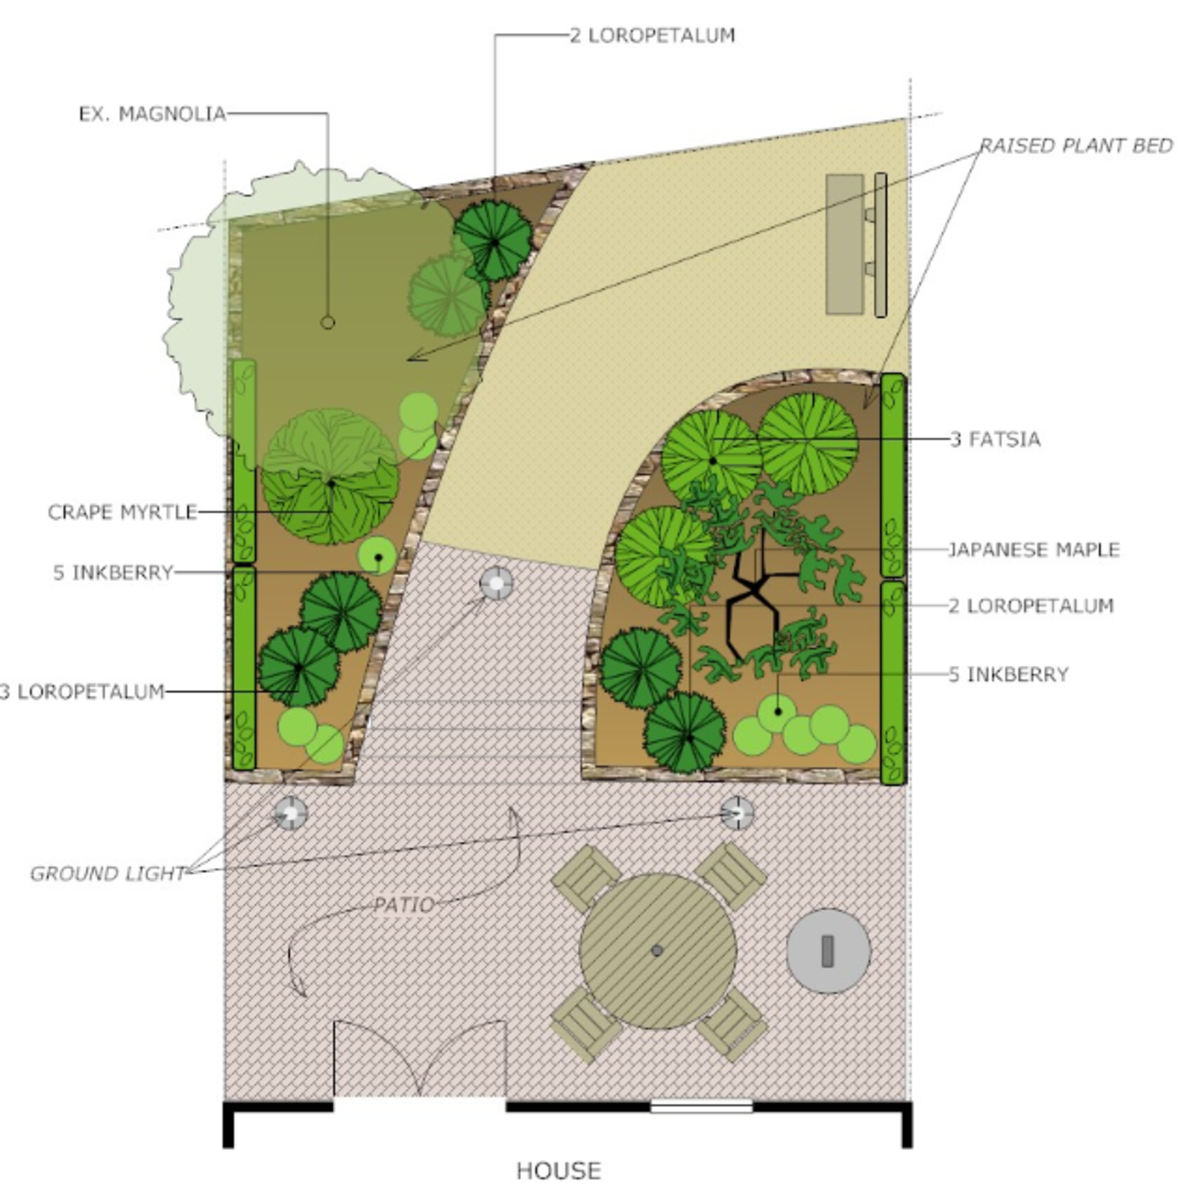 This is a garden landscape plan, available to use with the software.